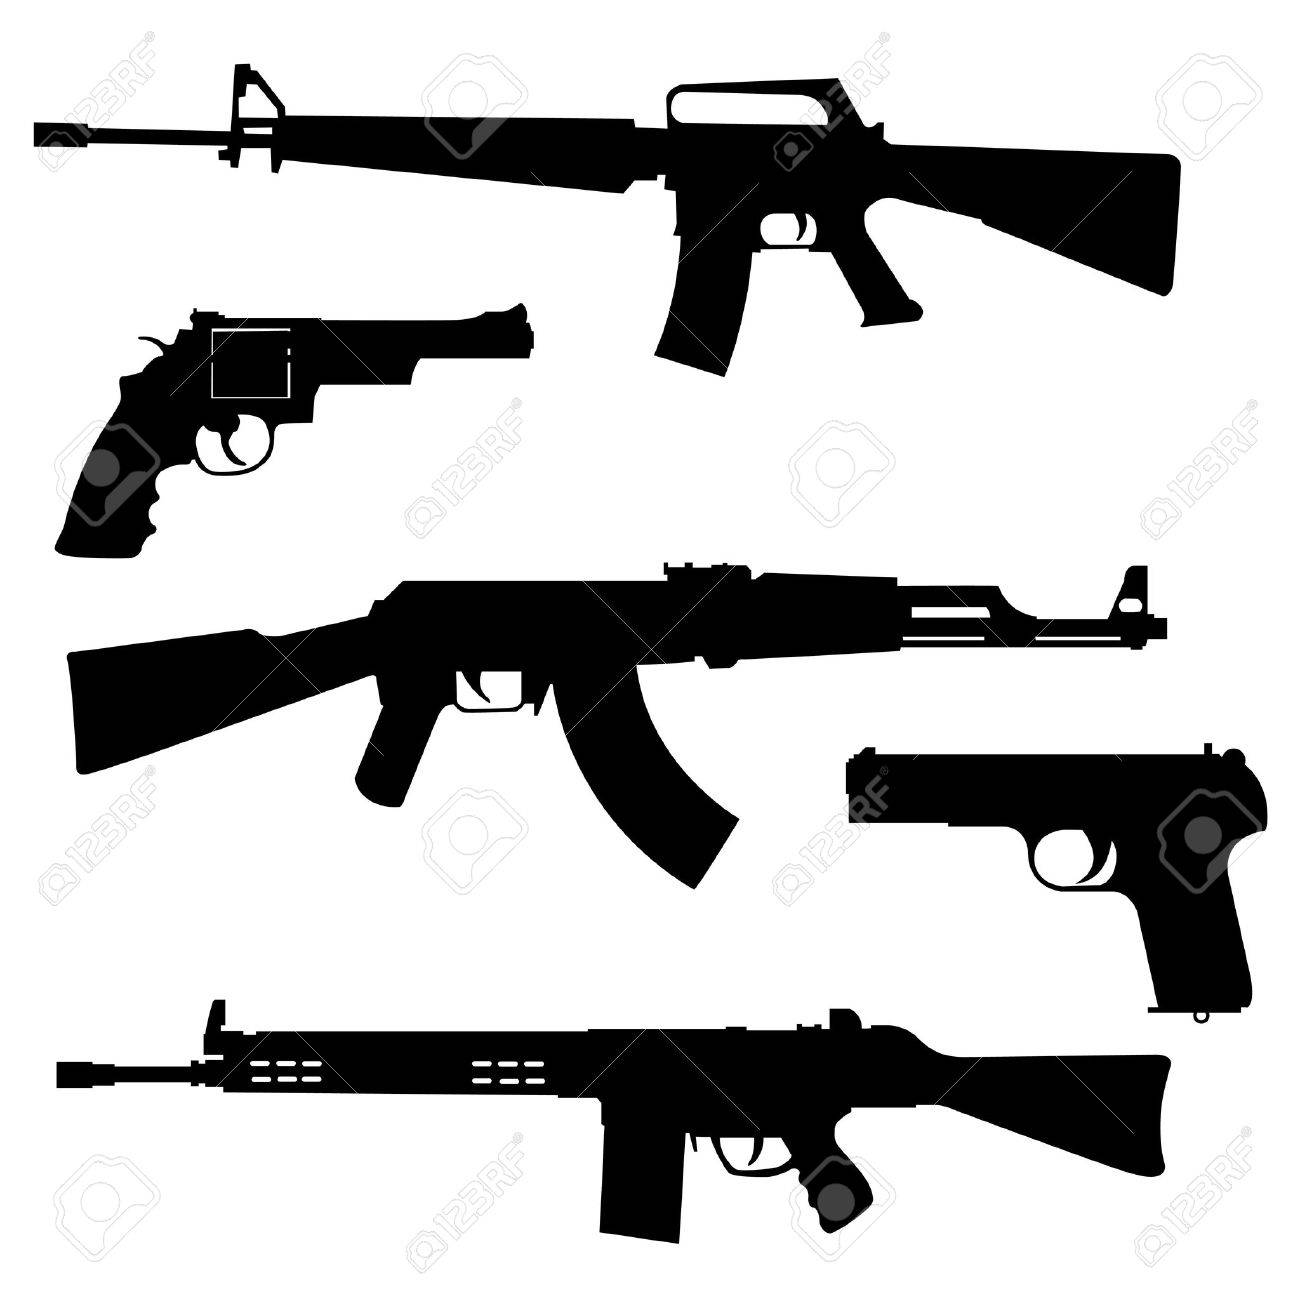 Silhouettes of pistols and submachine gun on a white background Stock Vector - 11624530